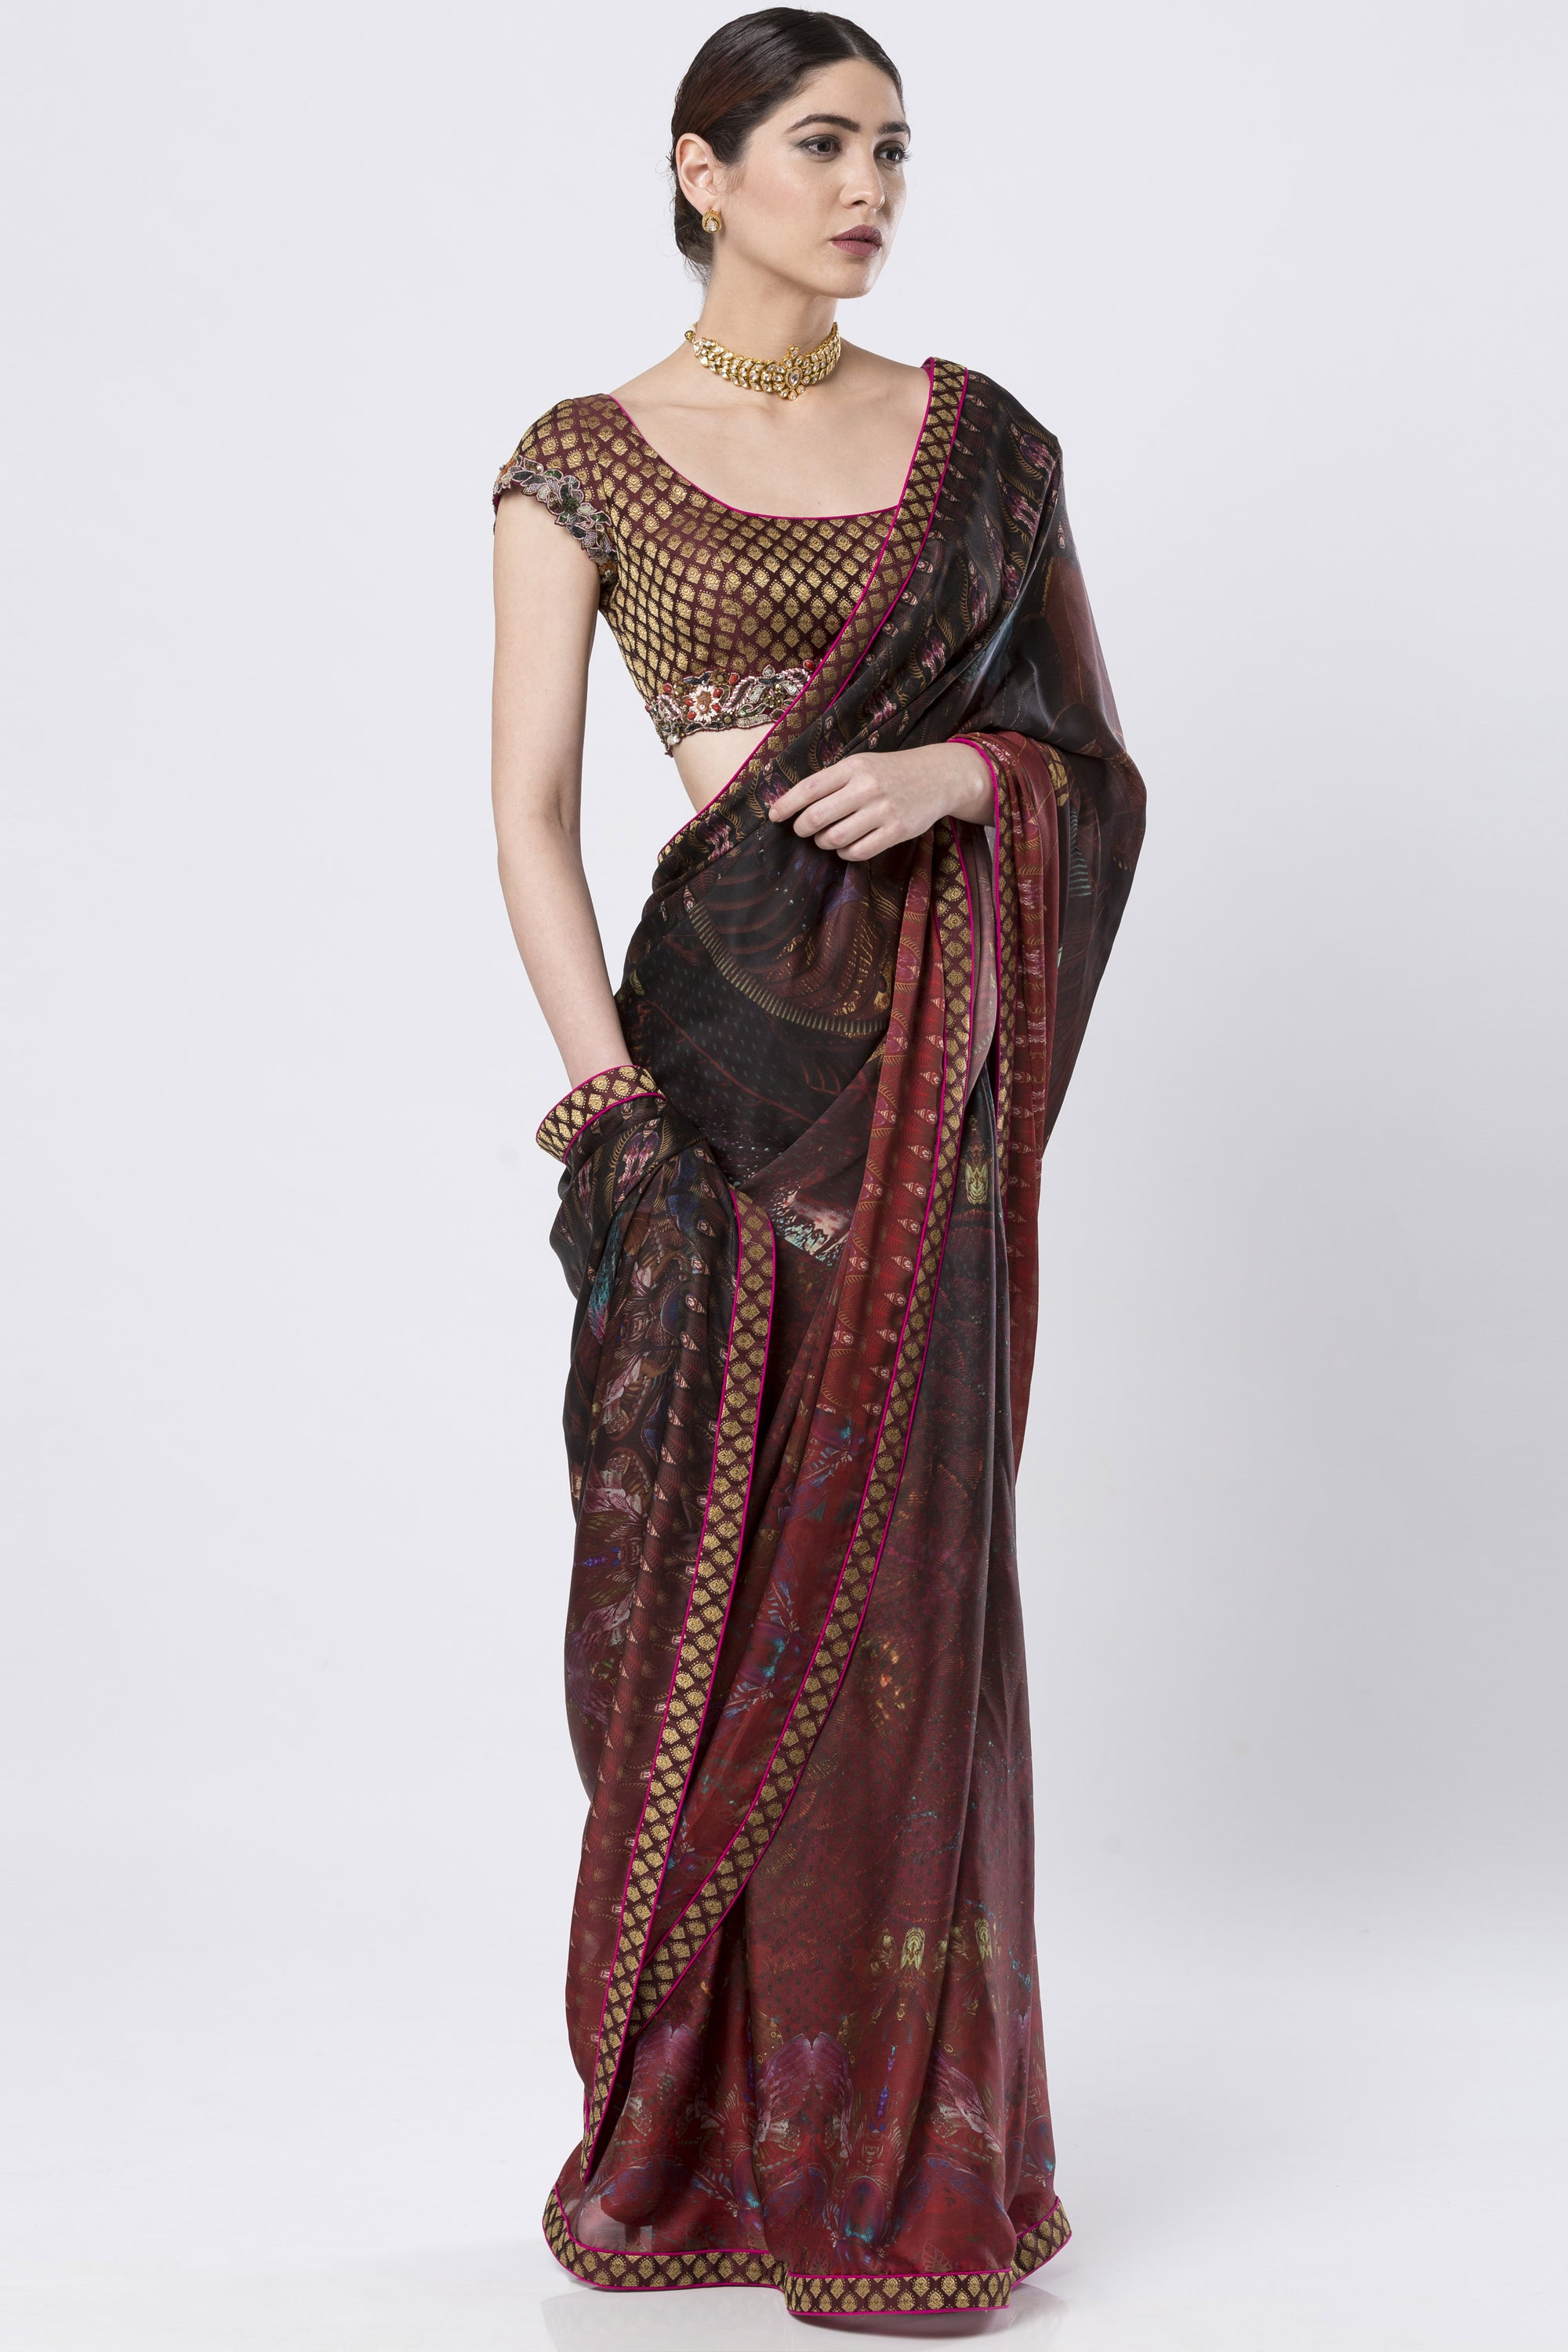 Brocade & Hand Embroidered Maroon Saree SIDE